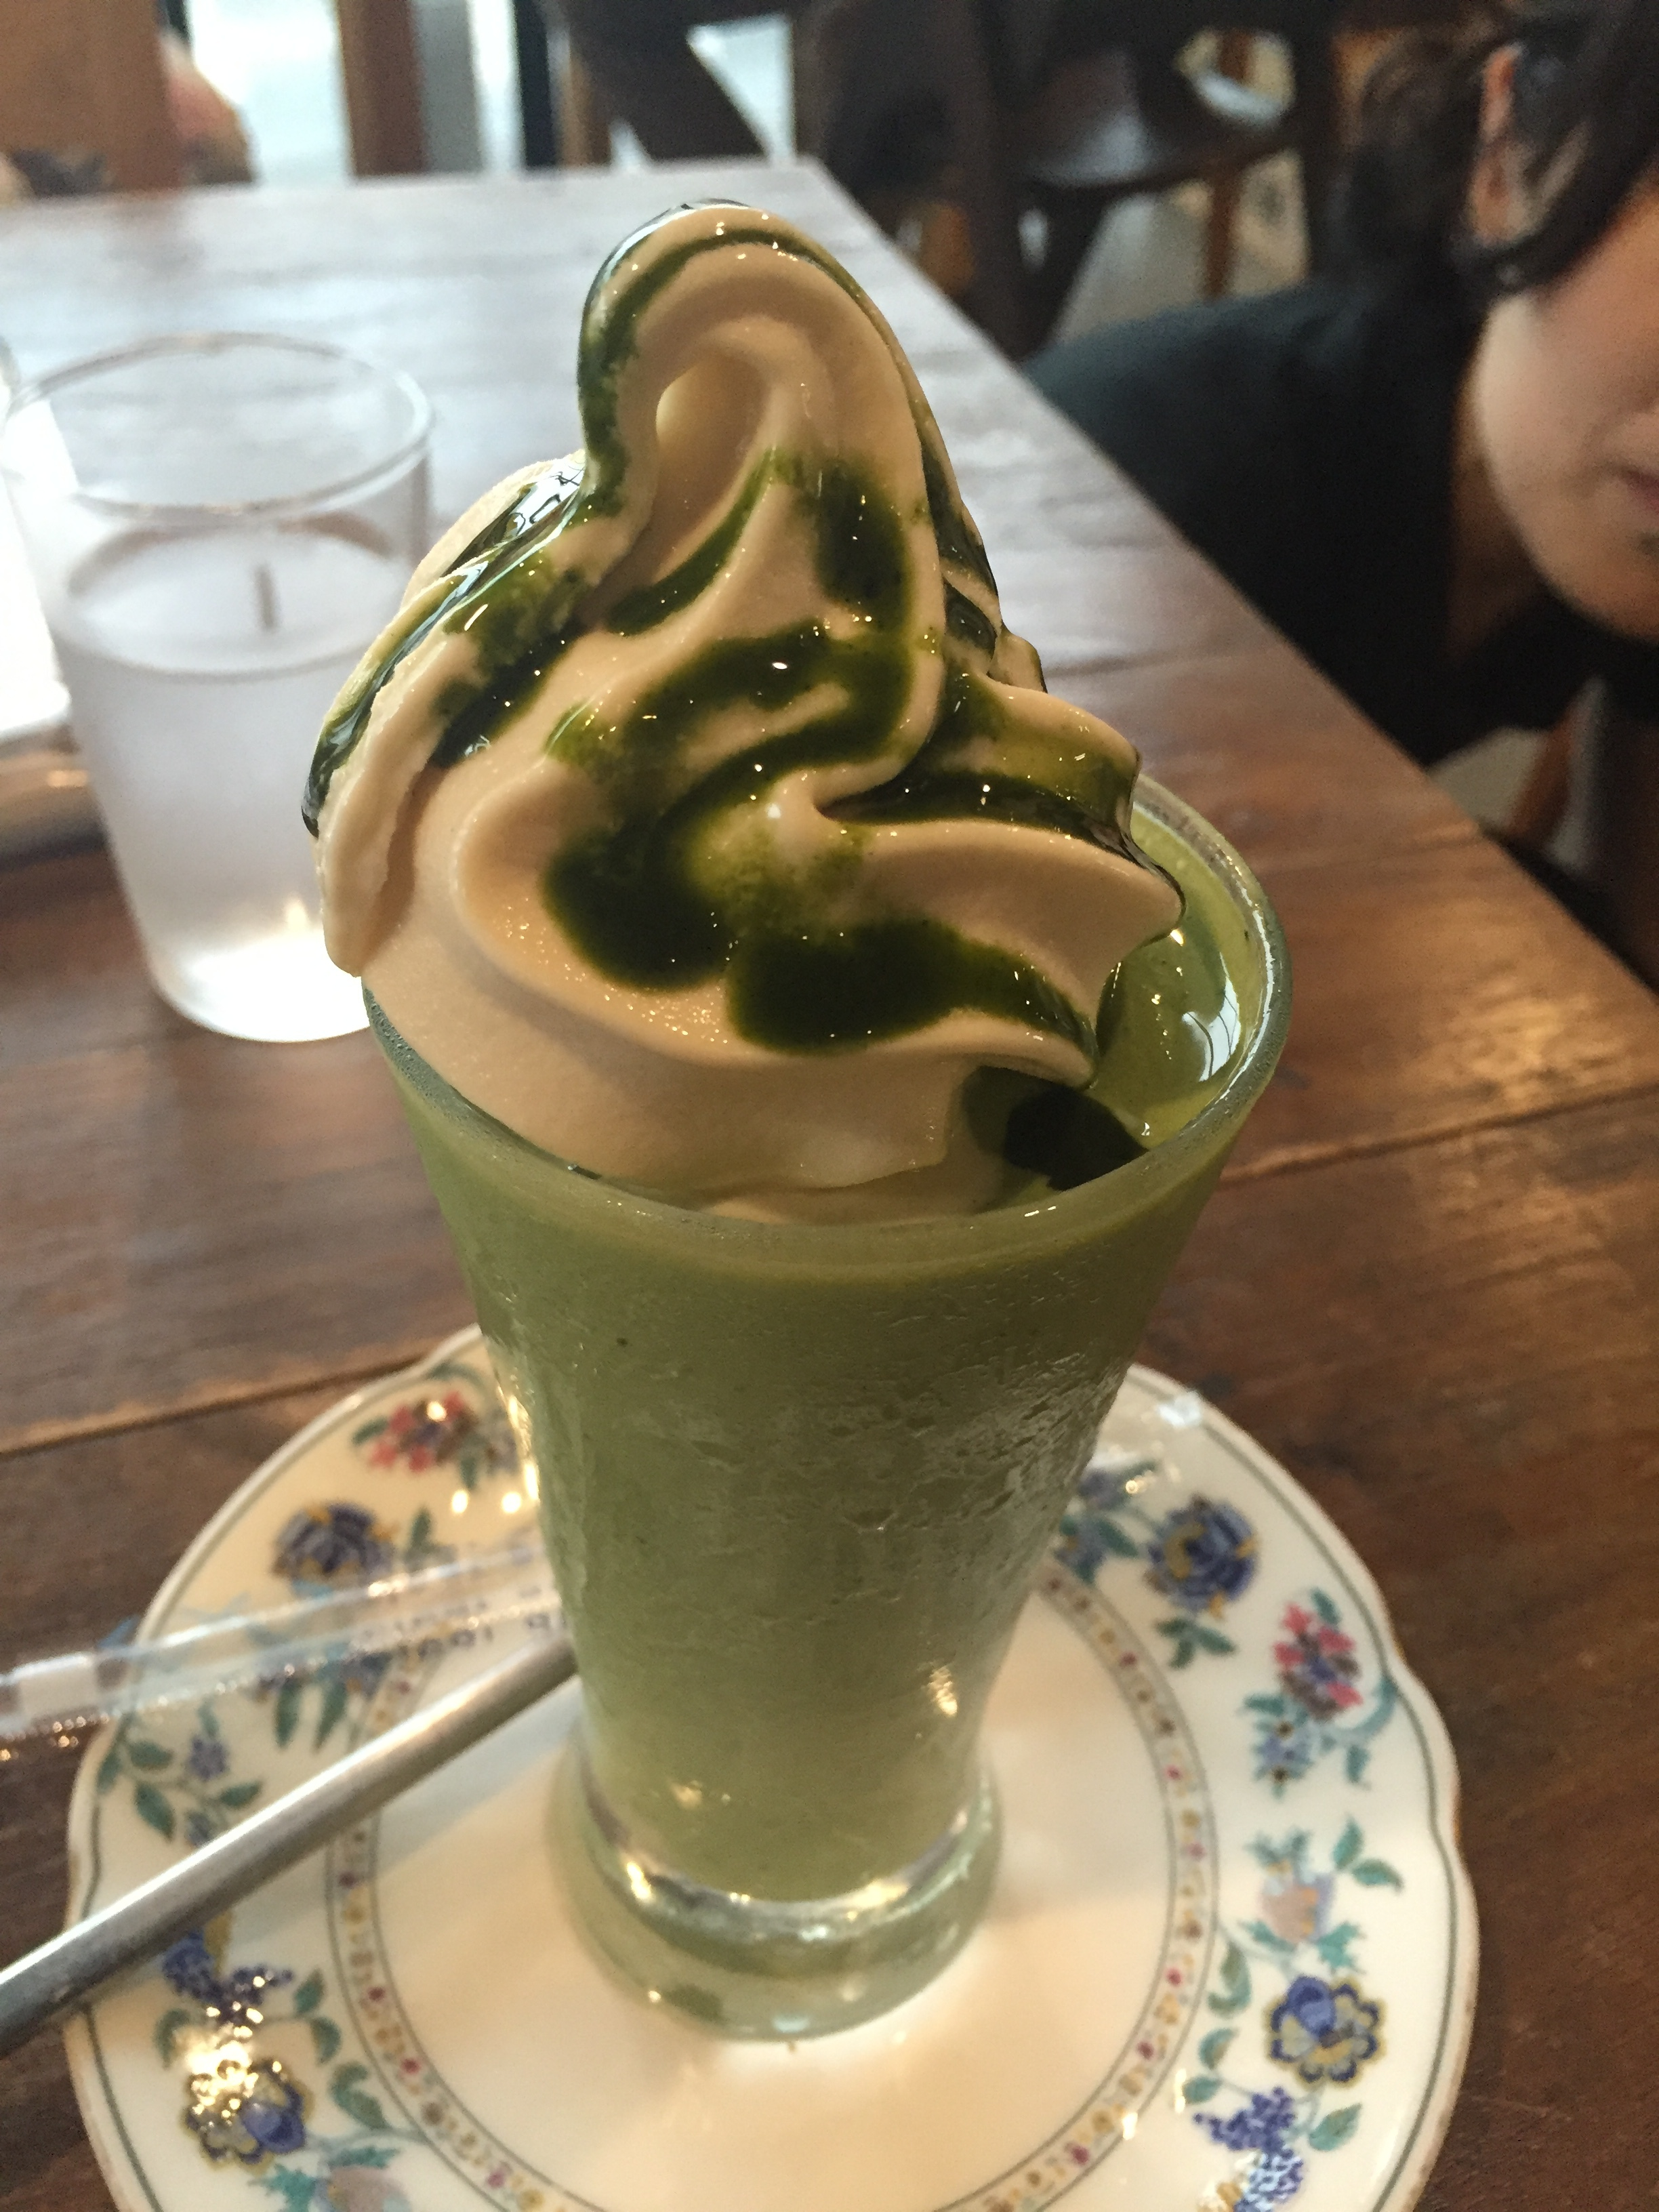 soy milk soft serve 100% vegan and gluten-free in Kyoto Japan